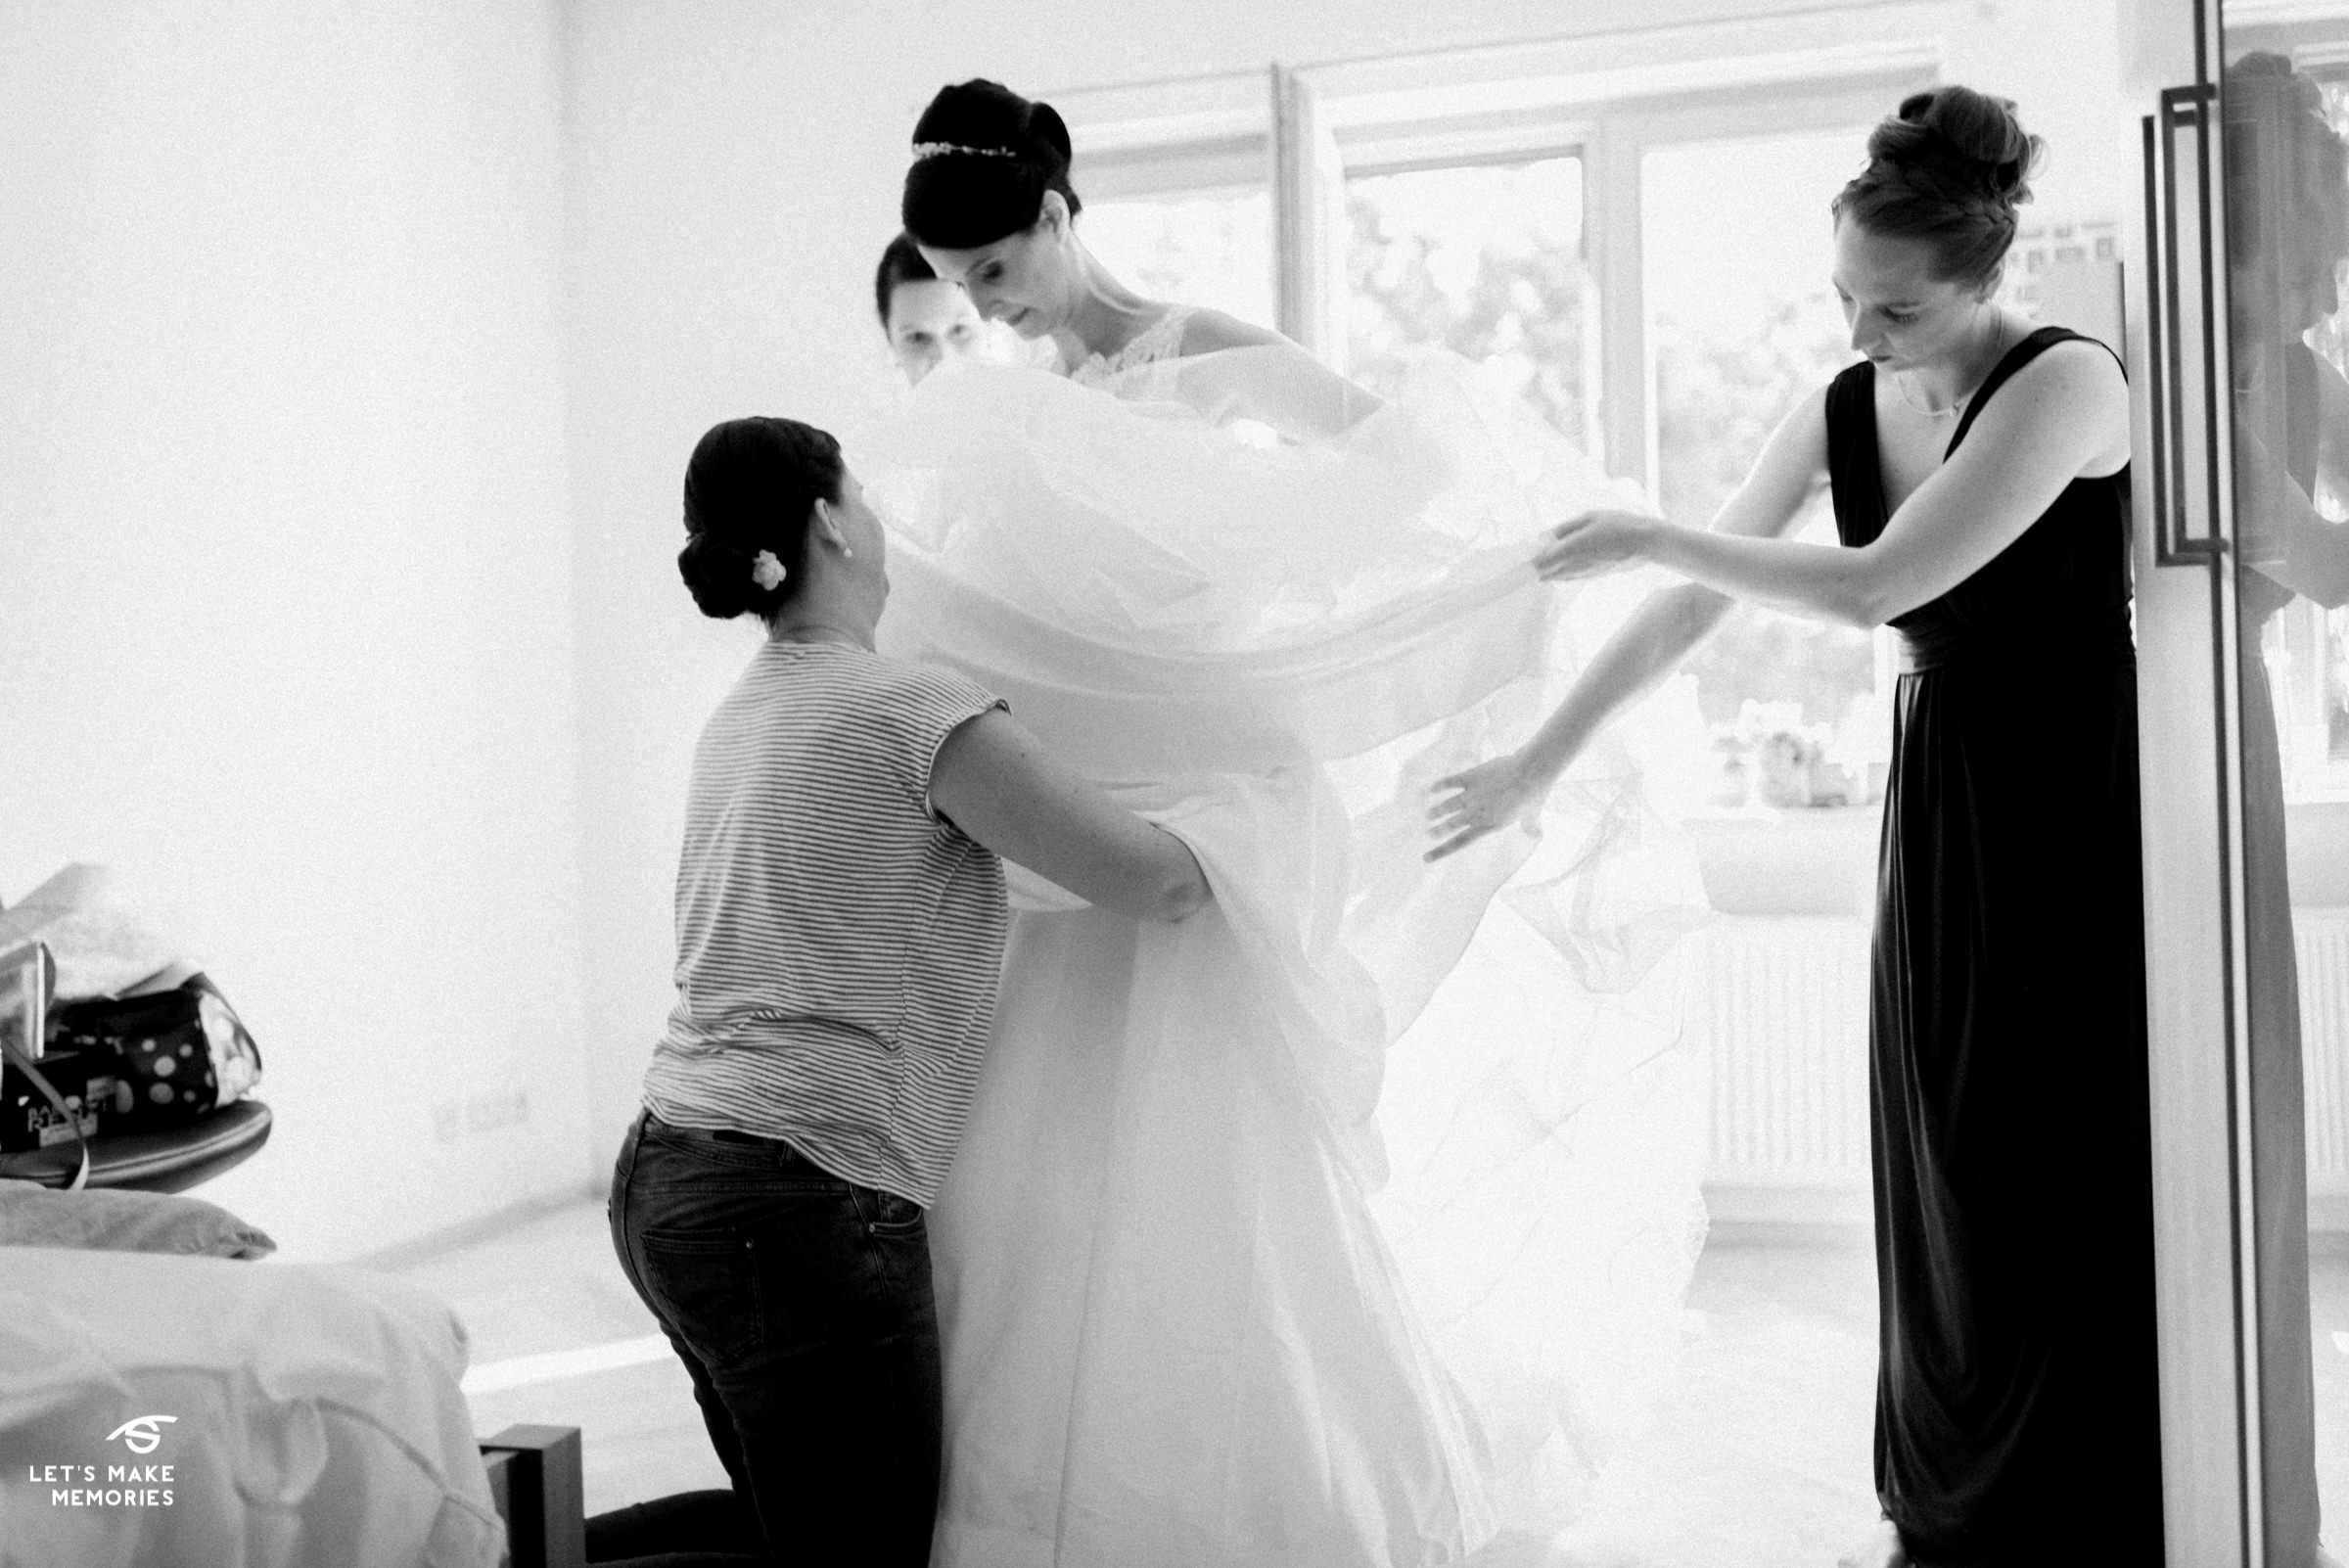 brides sister helping her put on her dress